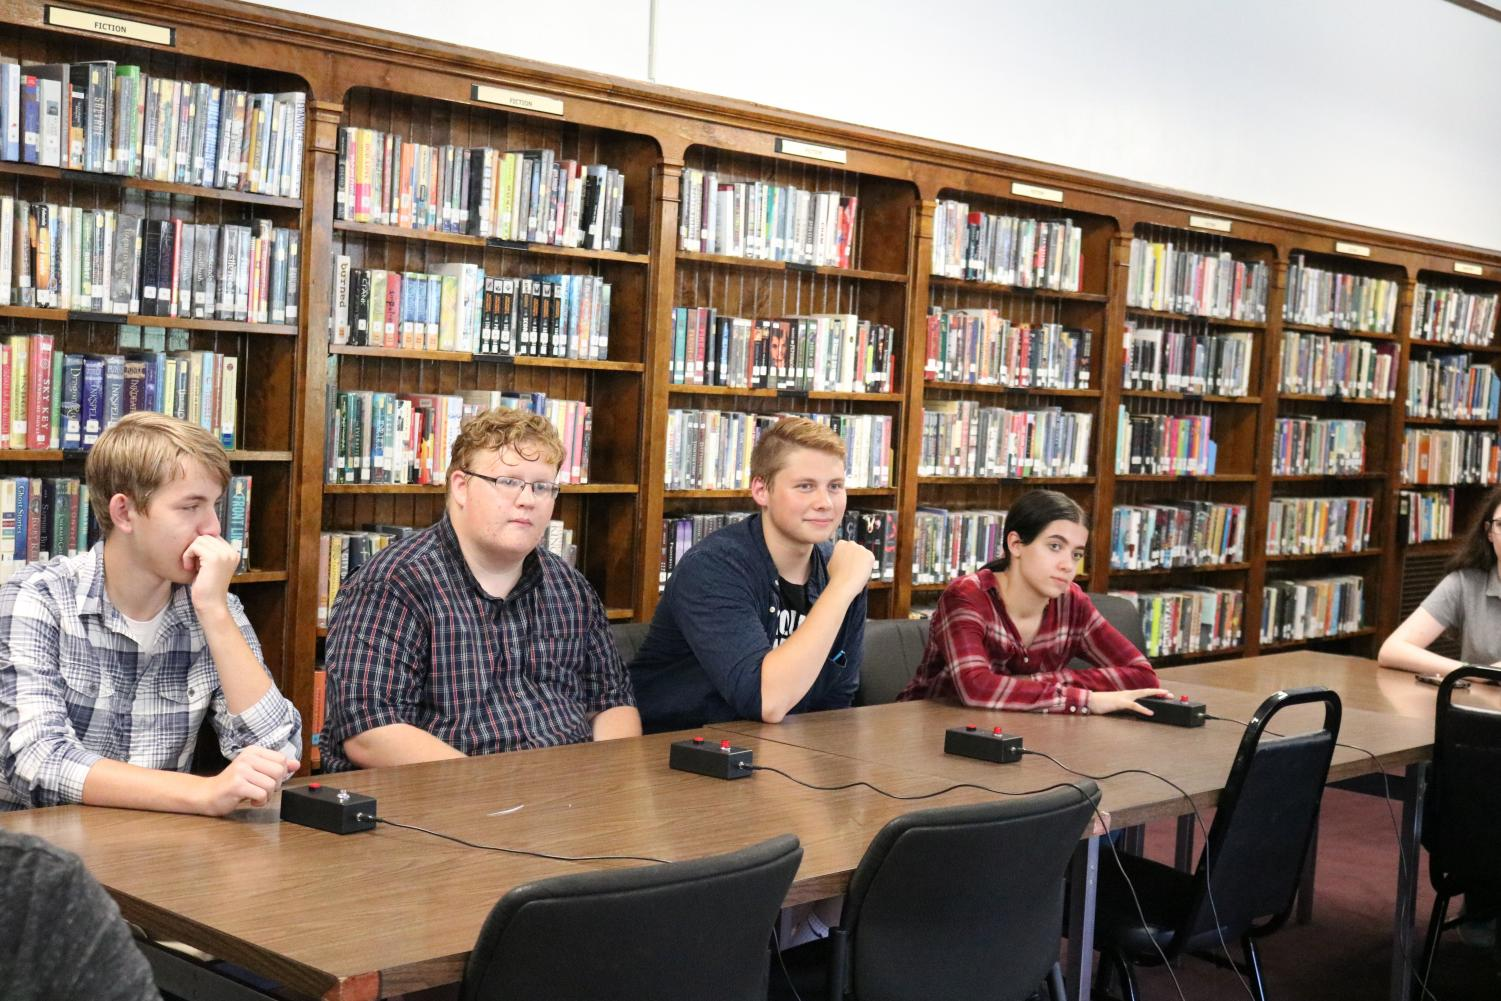 Members of the quiz team at practice listen to the questions until they think they have an answer and buzz in. The quiz team has been going strong under the direction of Mrs. Krista Torpey for three years. Senior Victoria Oswald said,